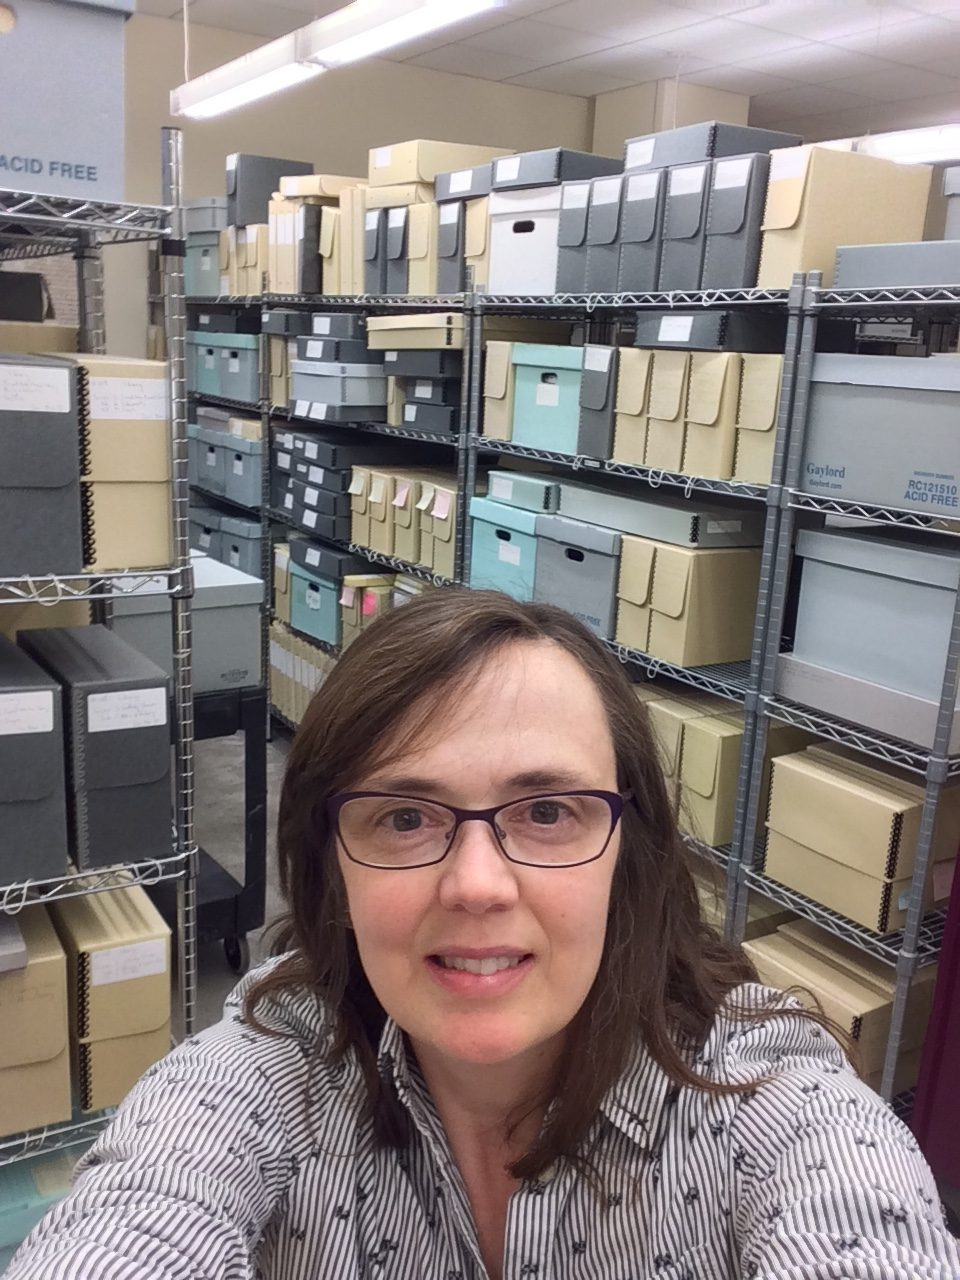 A selfie of Wendy Gonaver from the neck up, with archive boxes behind her